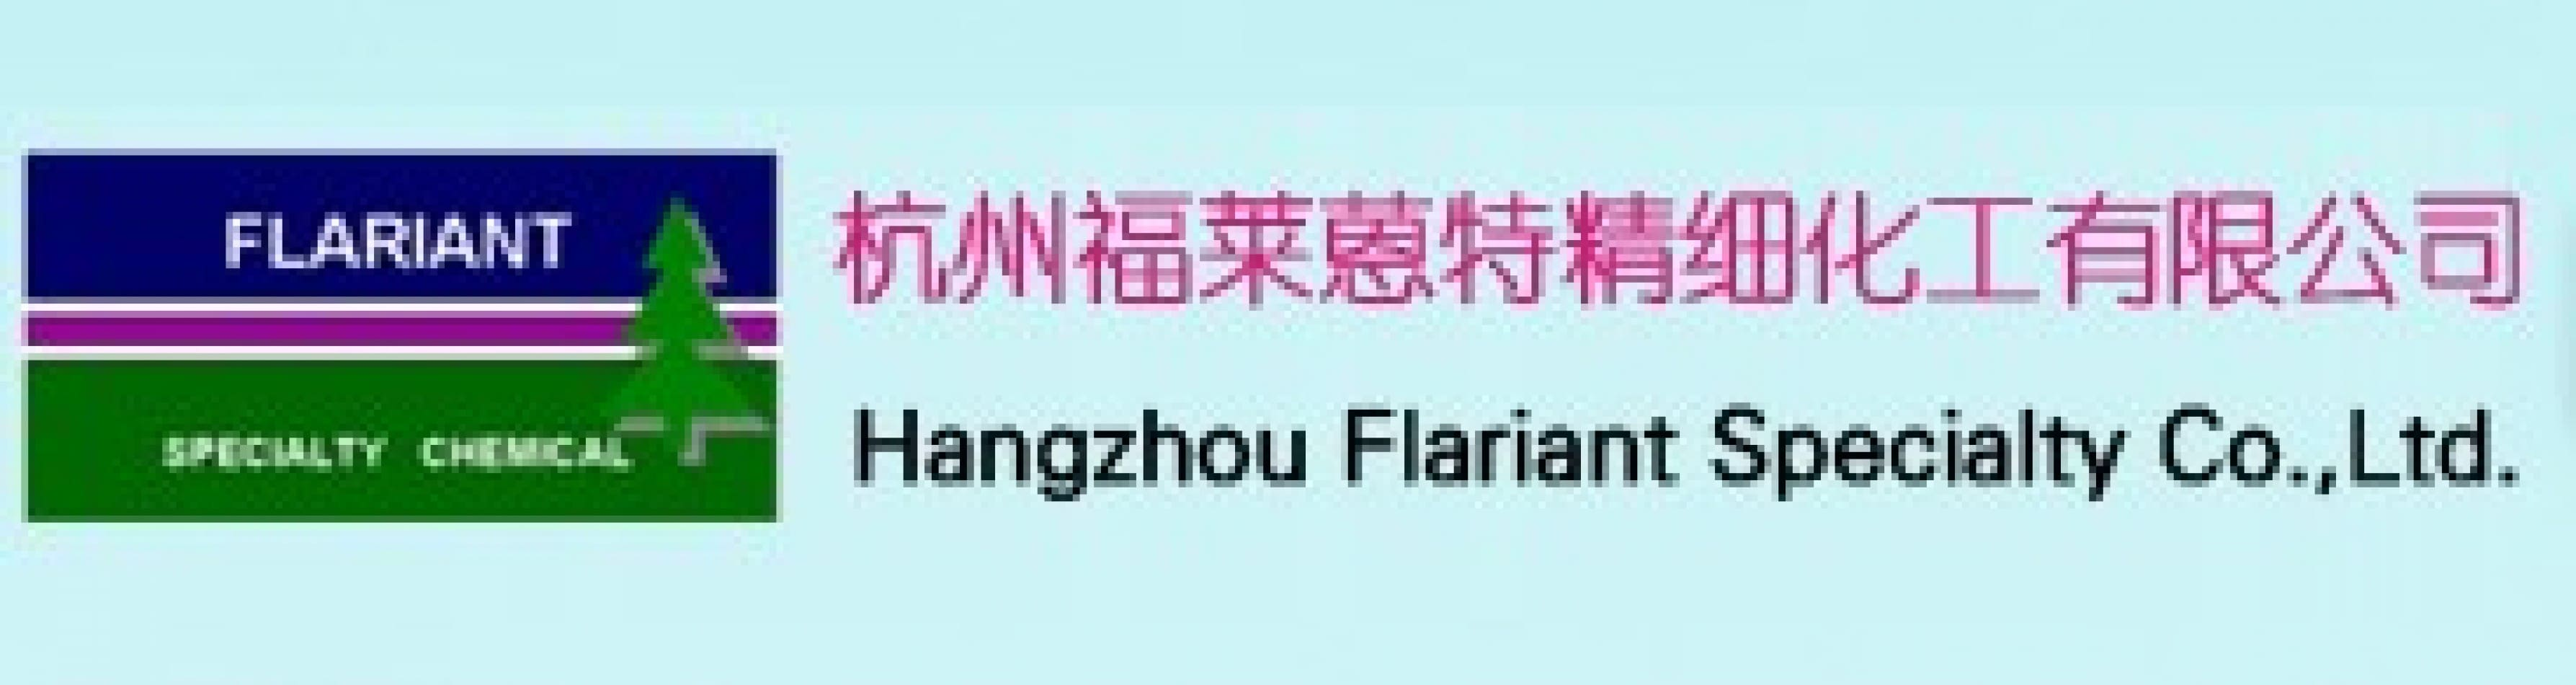 Hangzhou Flariant Specialty Co.,Ltd.